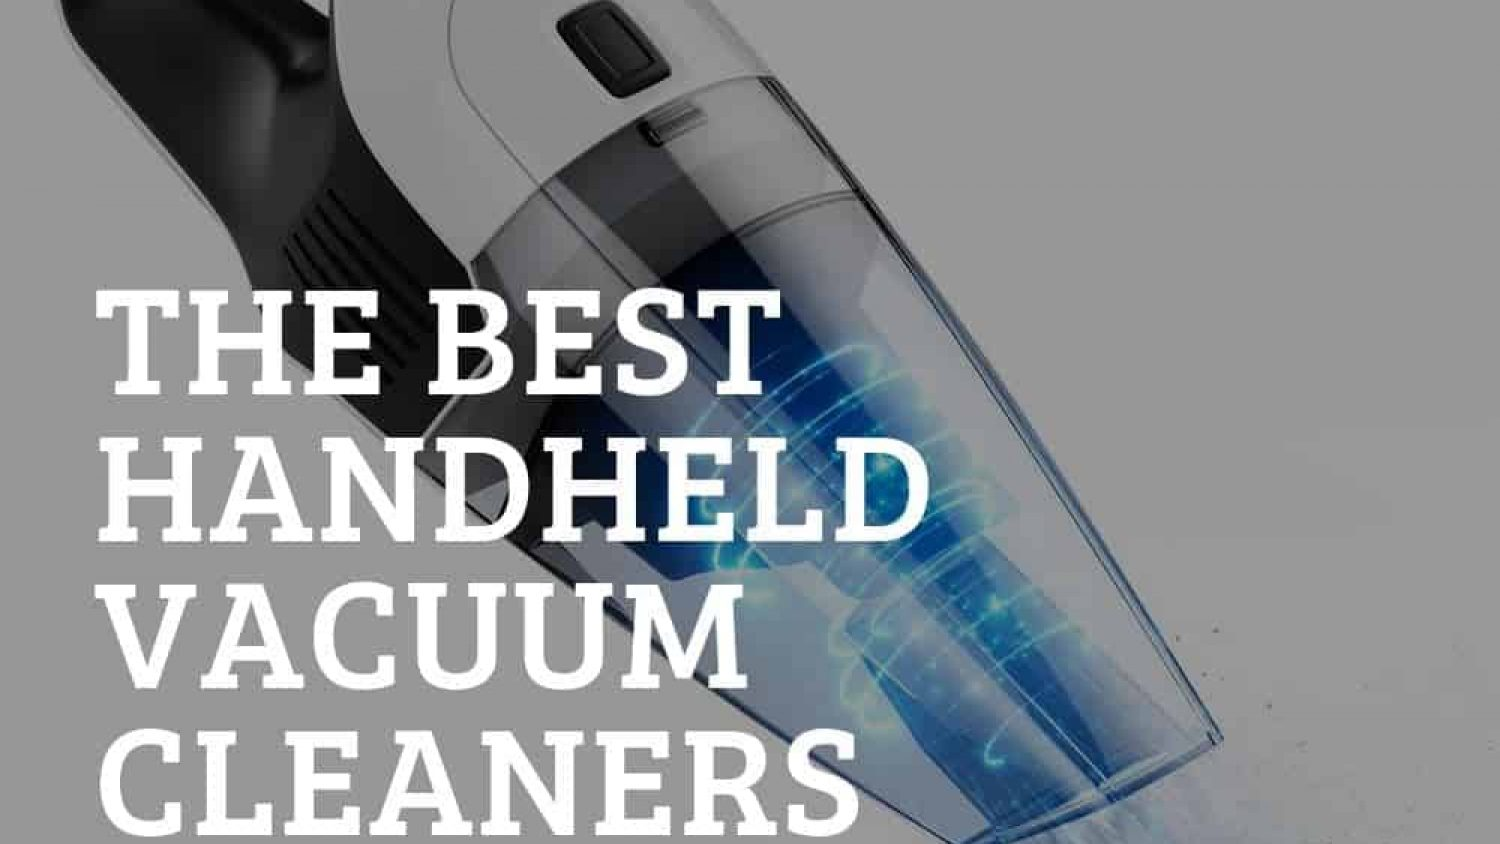 Best Handheld Vacuum Cleaners Reviewed – Perfect for Cleaning on the Go!